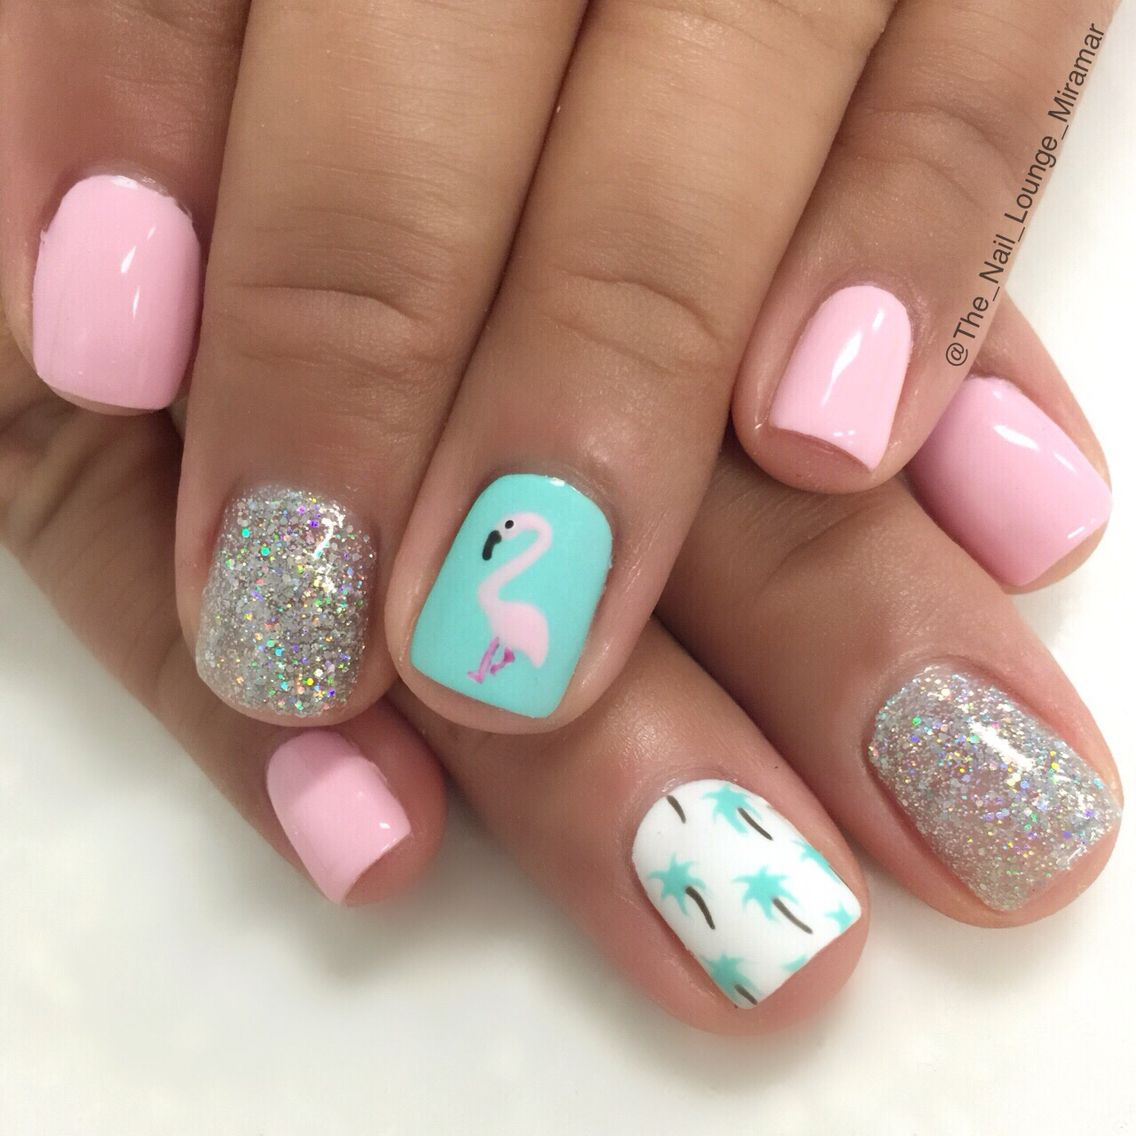 Flamingo Palmtrees Summer Vacation Nails Inspired By Mckenna Bleu Vacation Nails Beach Nails Flamingo Nails